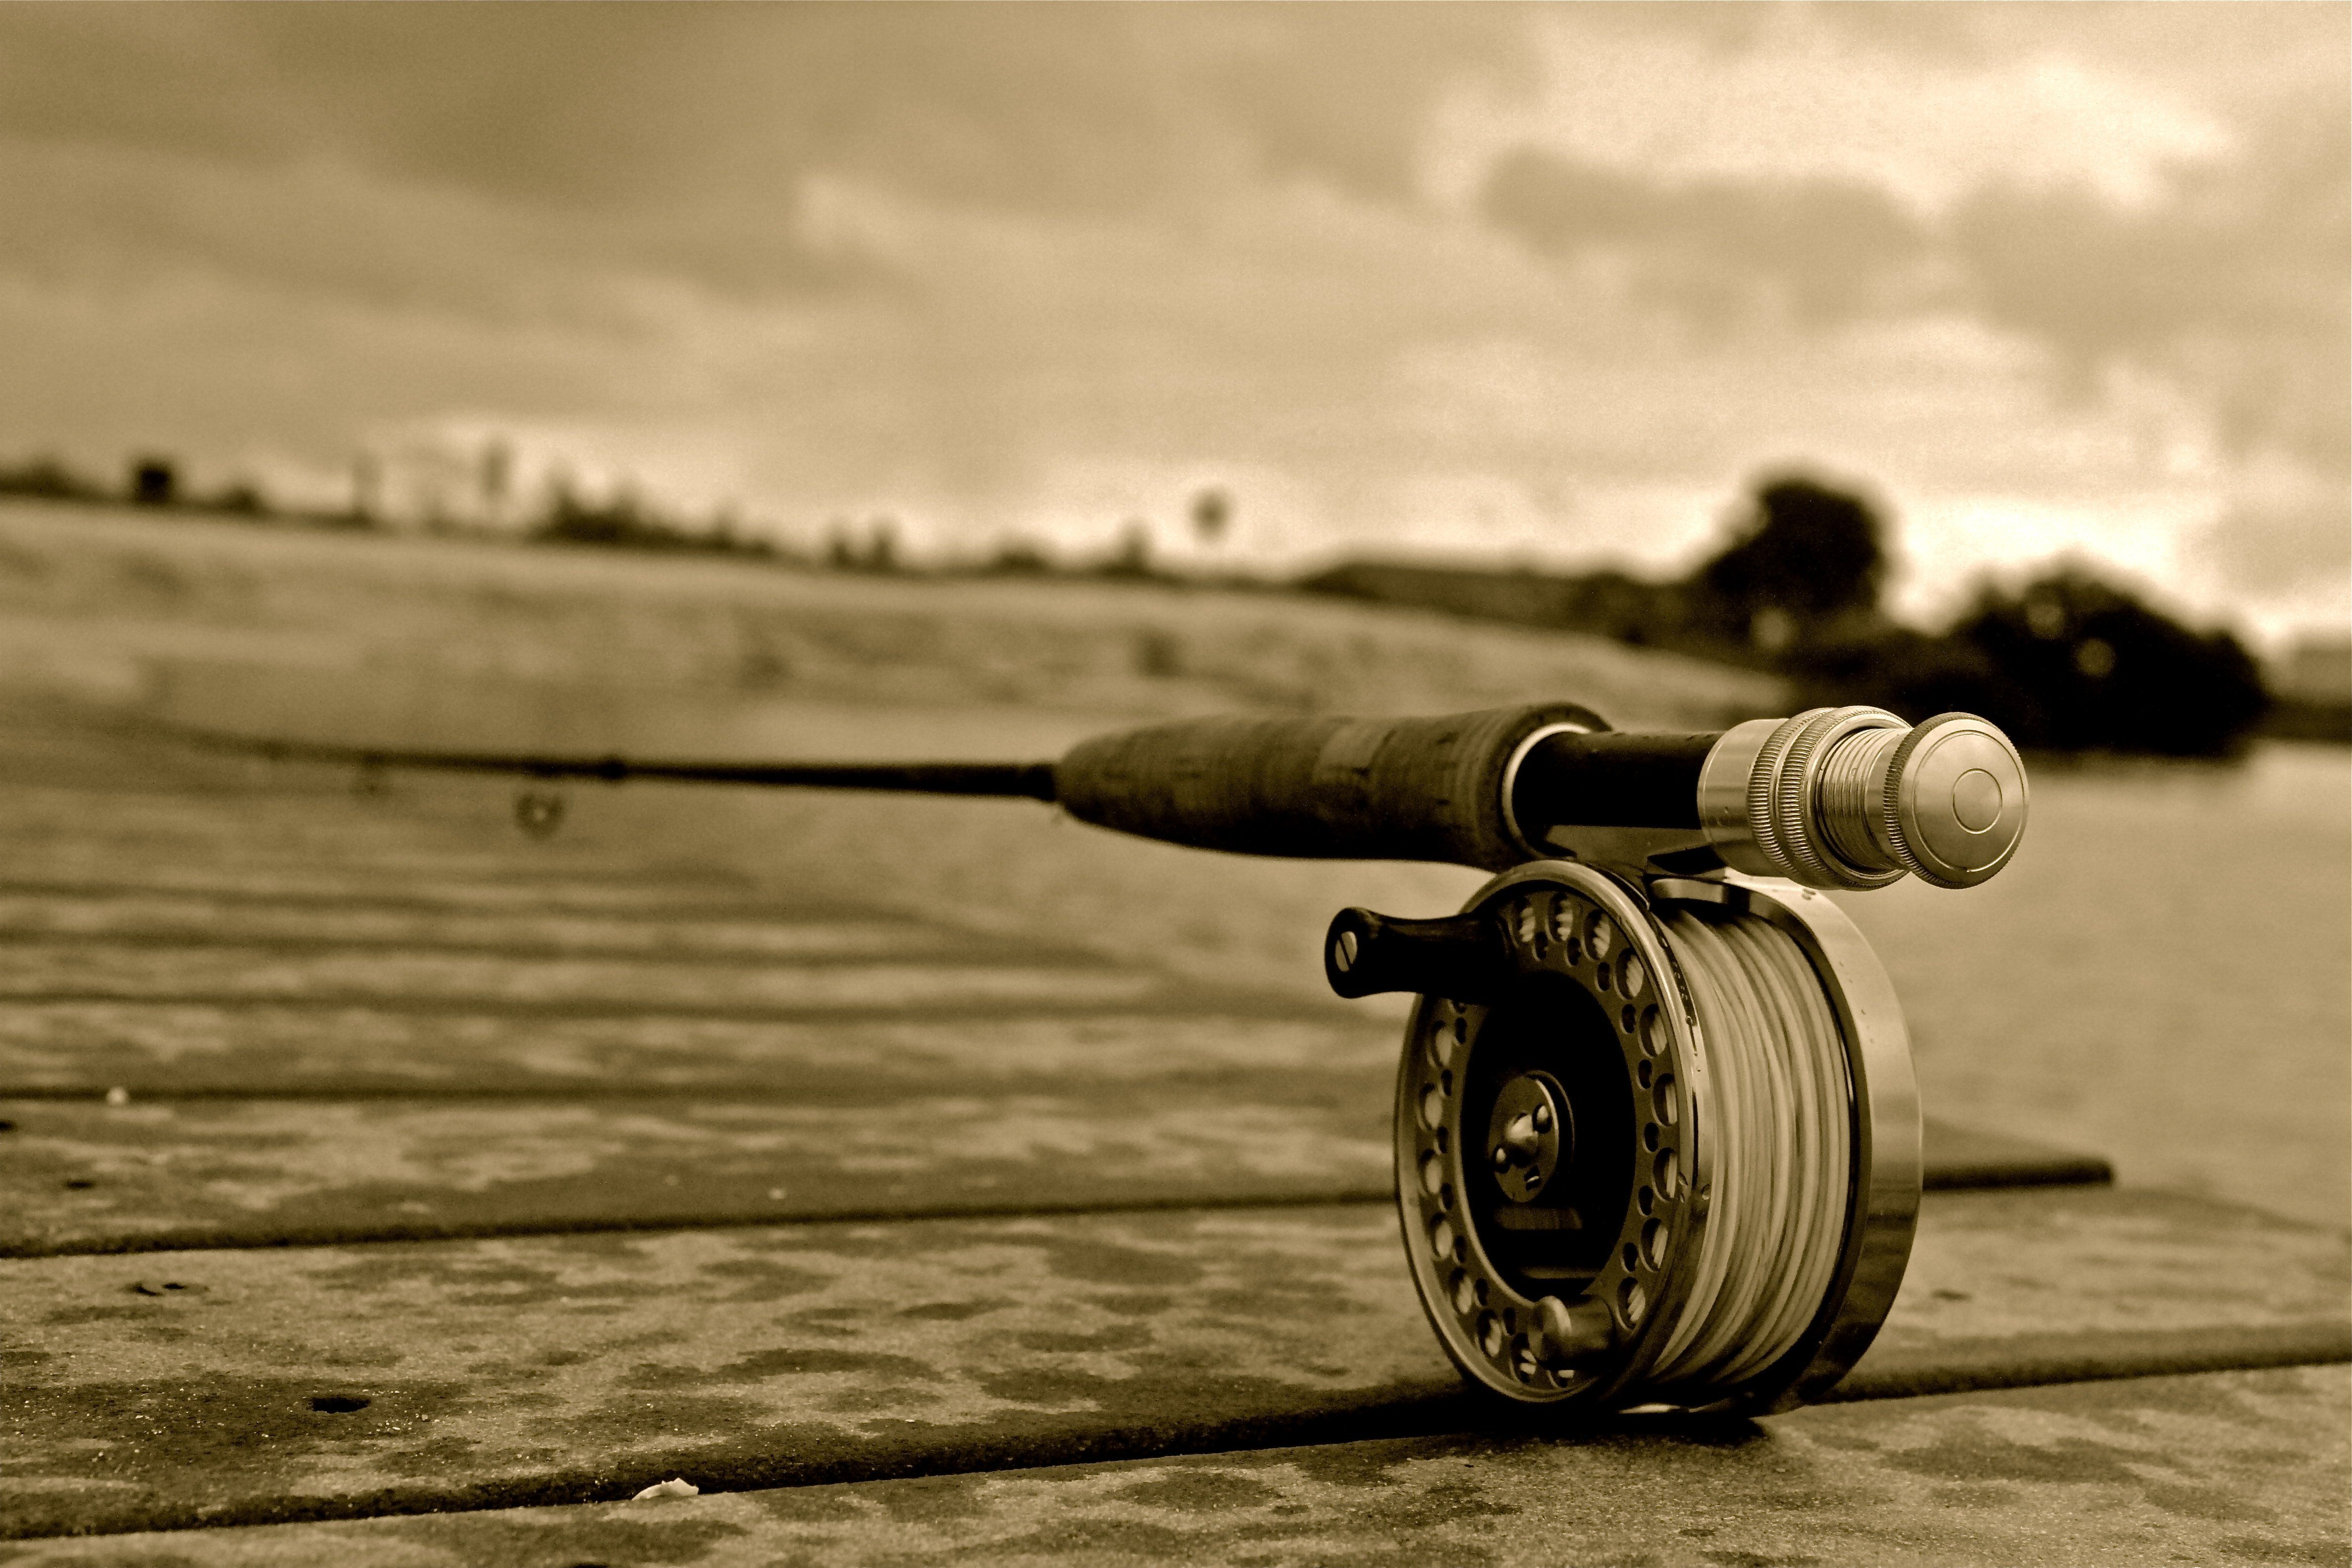 Fly Fishing Wallpapers For Android Trout fishing Fish 4752x3168